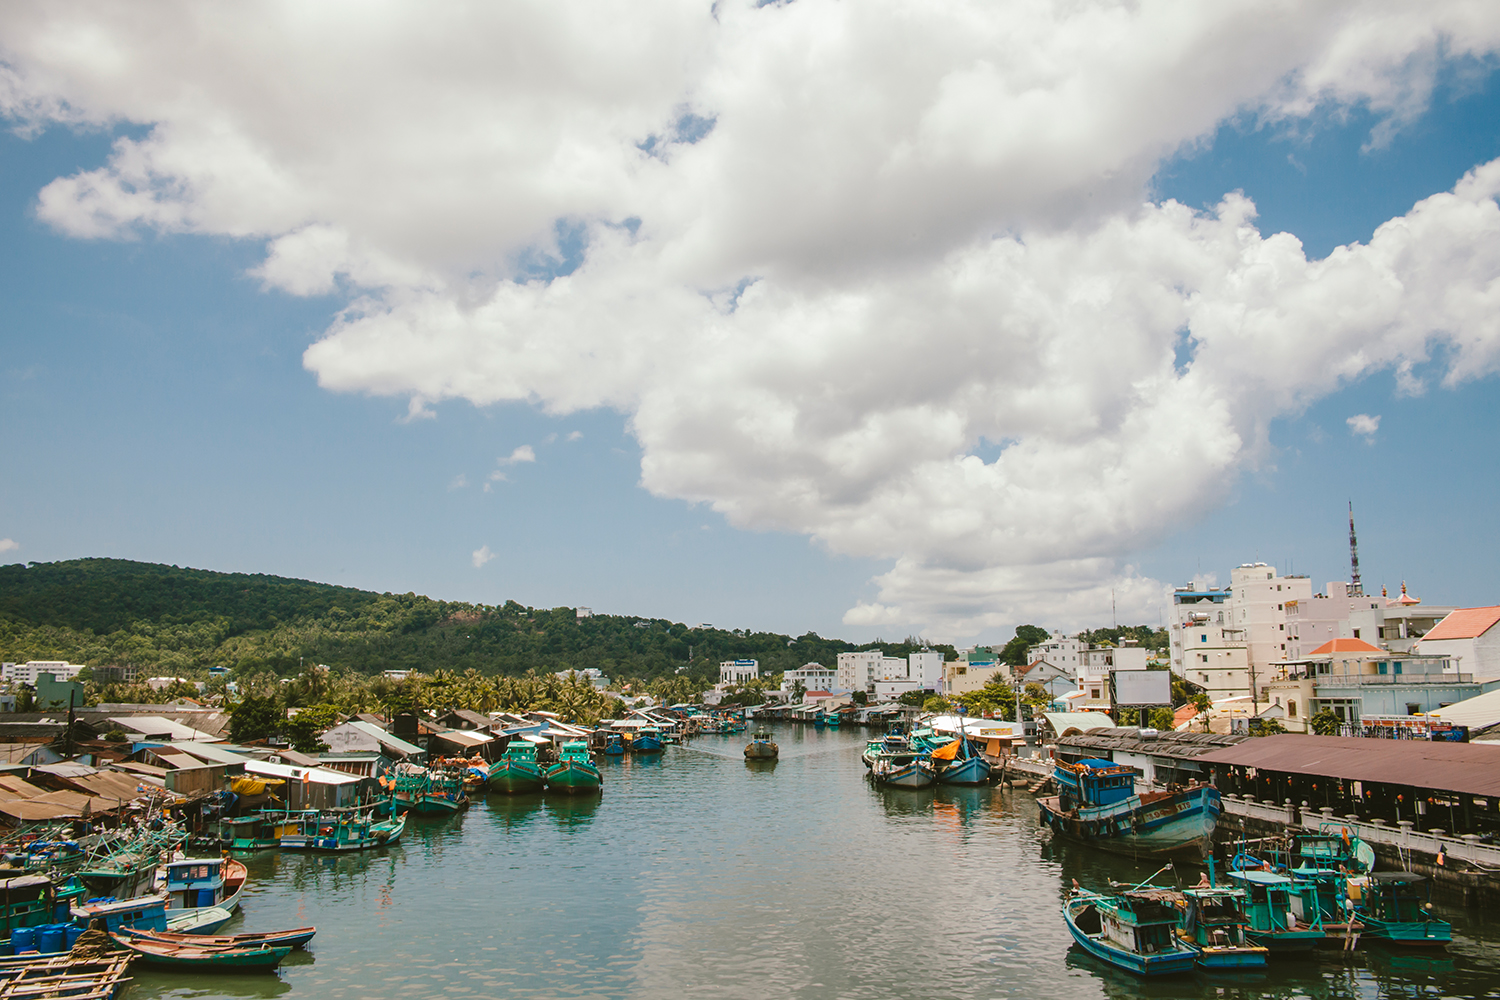 A view from the bridge in Phu Quoc Island